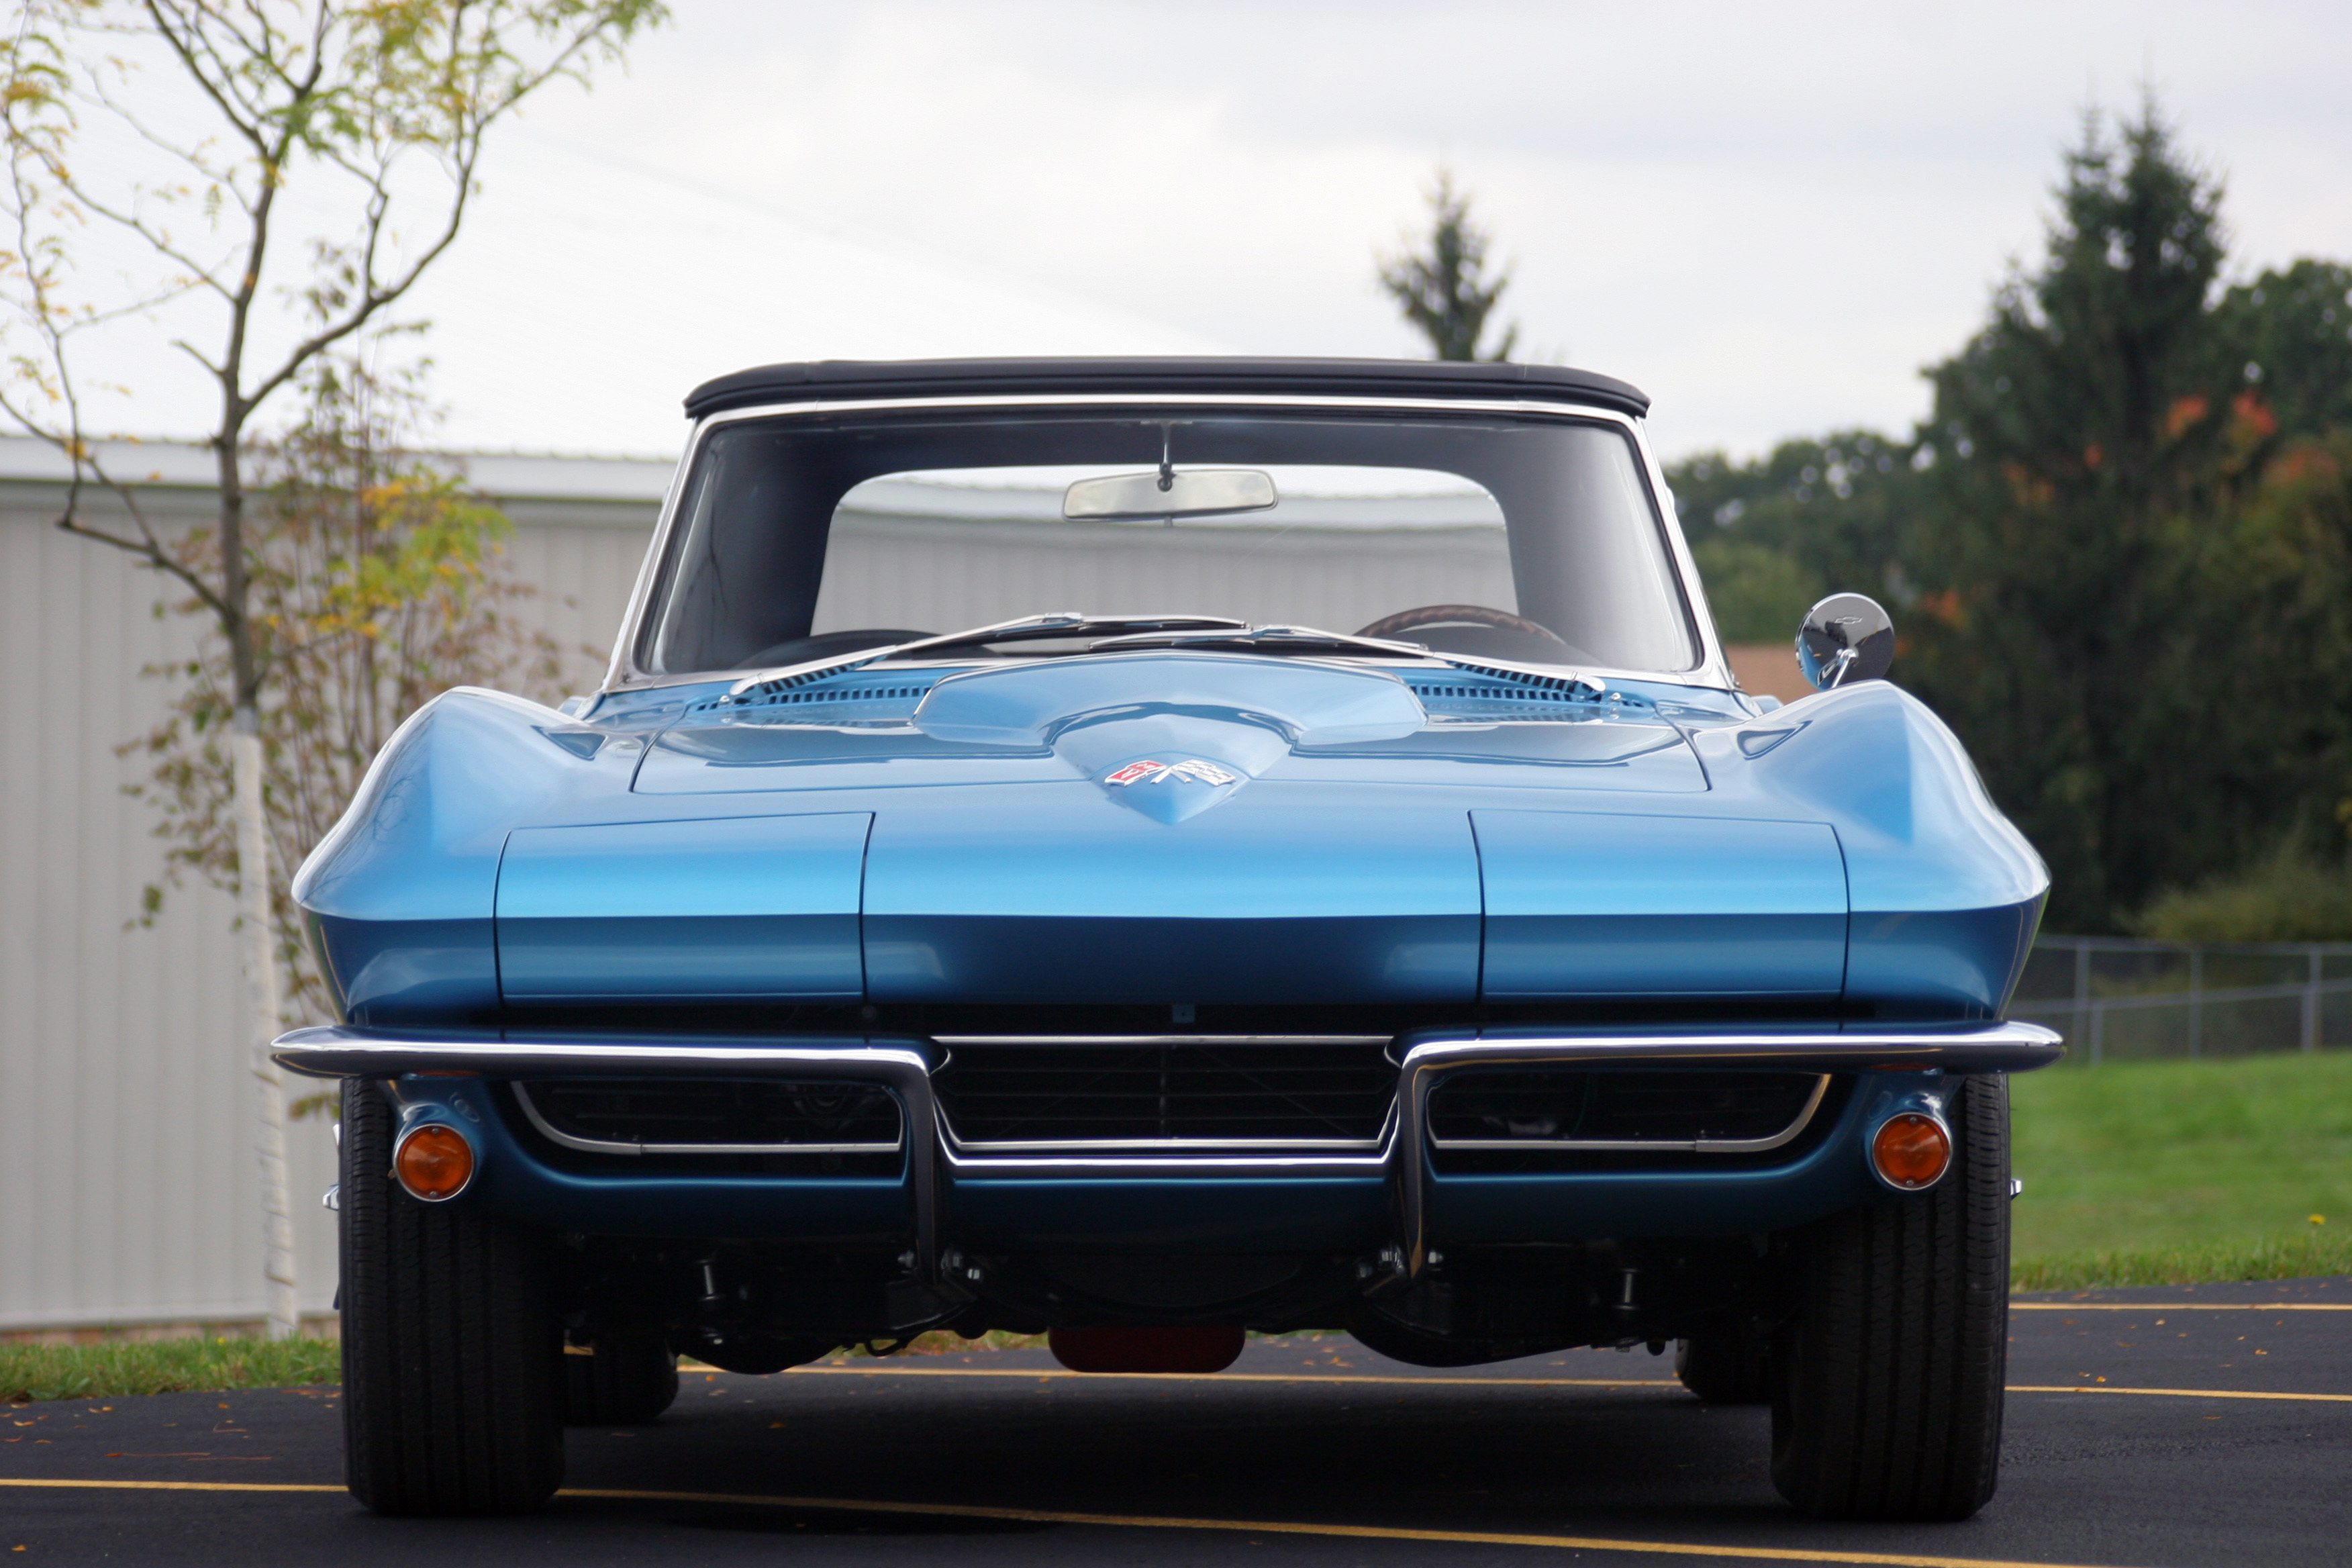 C2 Corvette For Sale >> 1965 C2 Corvette | Ultimate Guide (Overview, Specs, VIN Info, Performance & More)